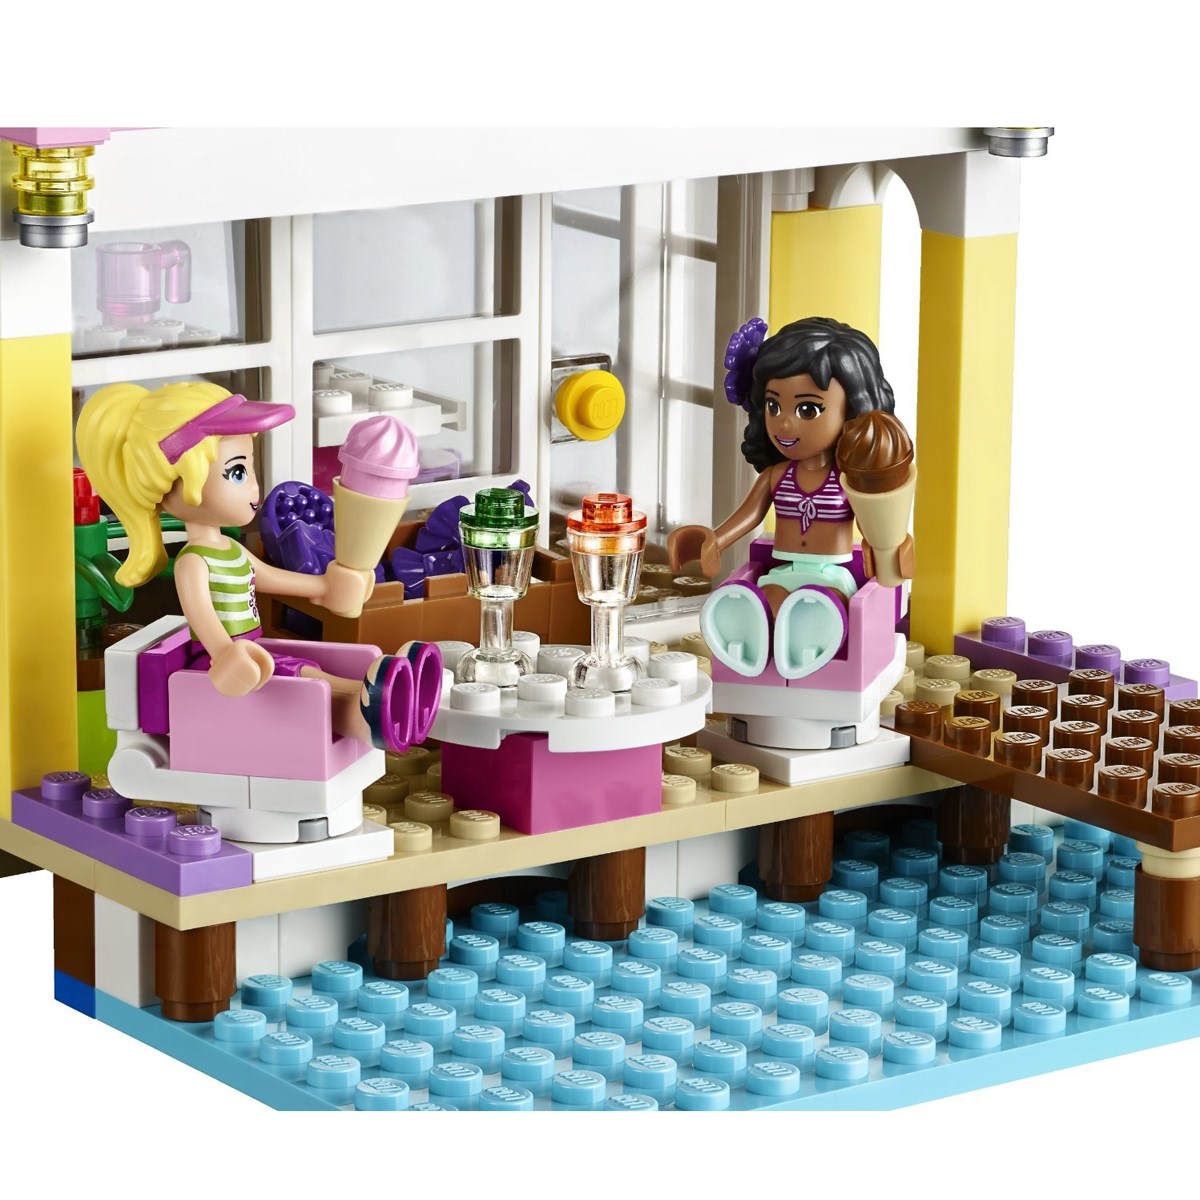 Do choi LEGO Friends 41037 - Nha Bai Bien Cua Stephanie